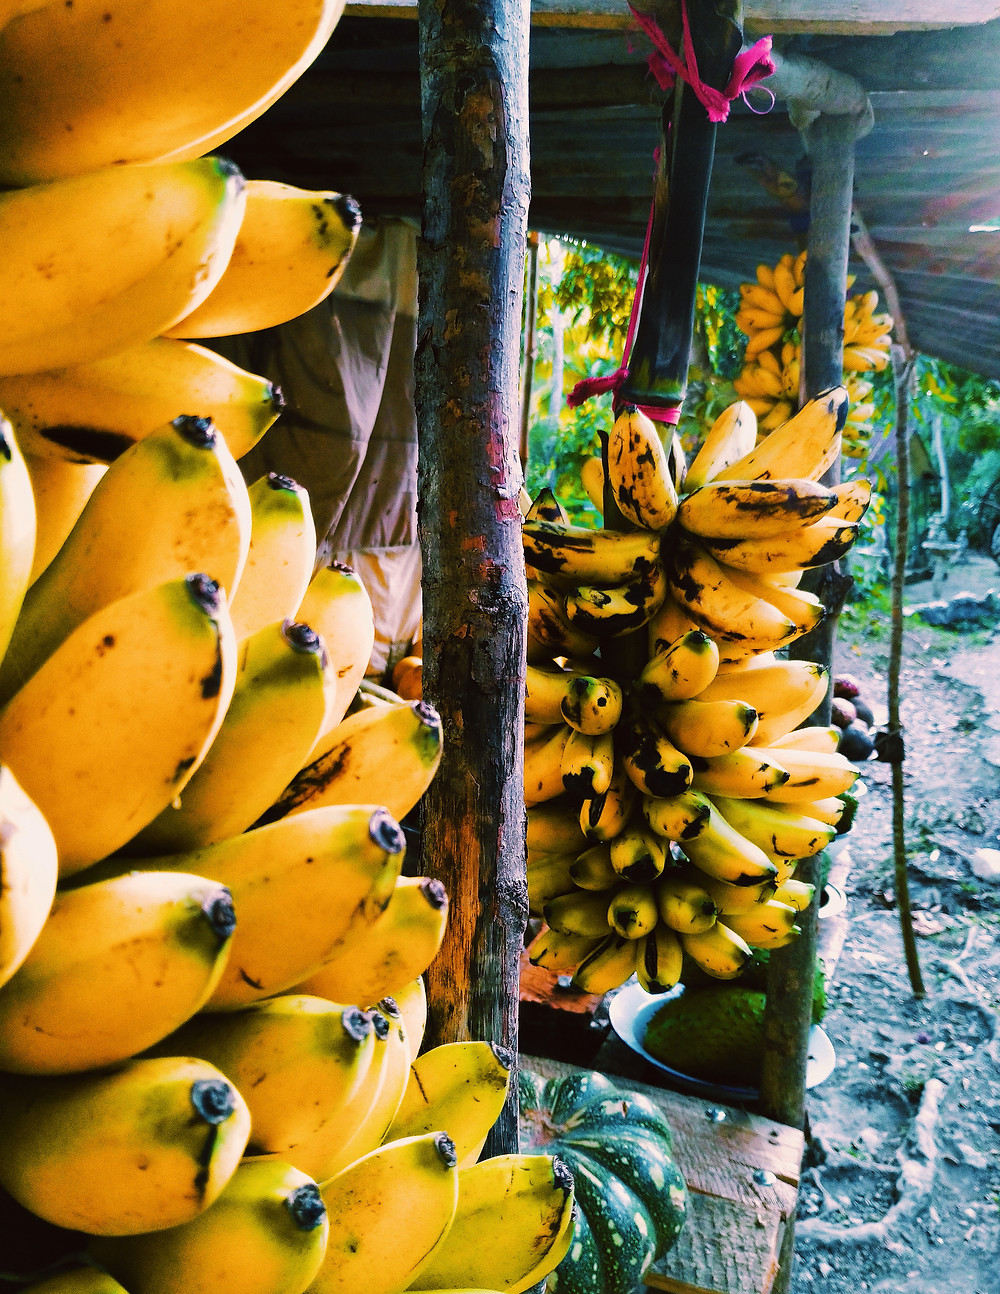 BANANAS are part of Haiti's diversified farming culture.